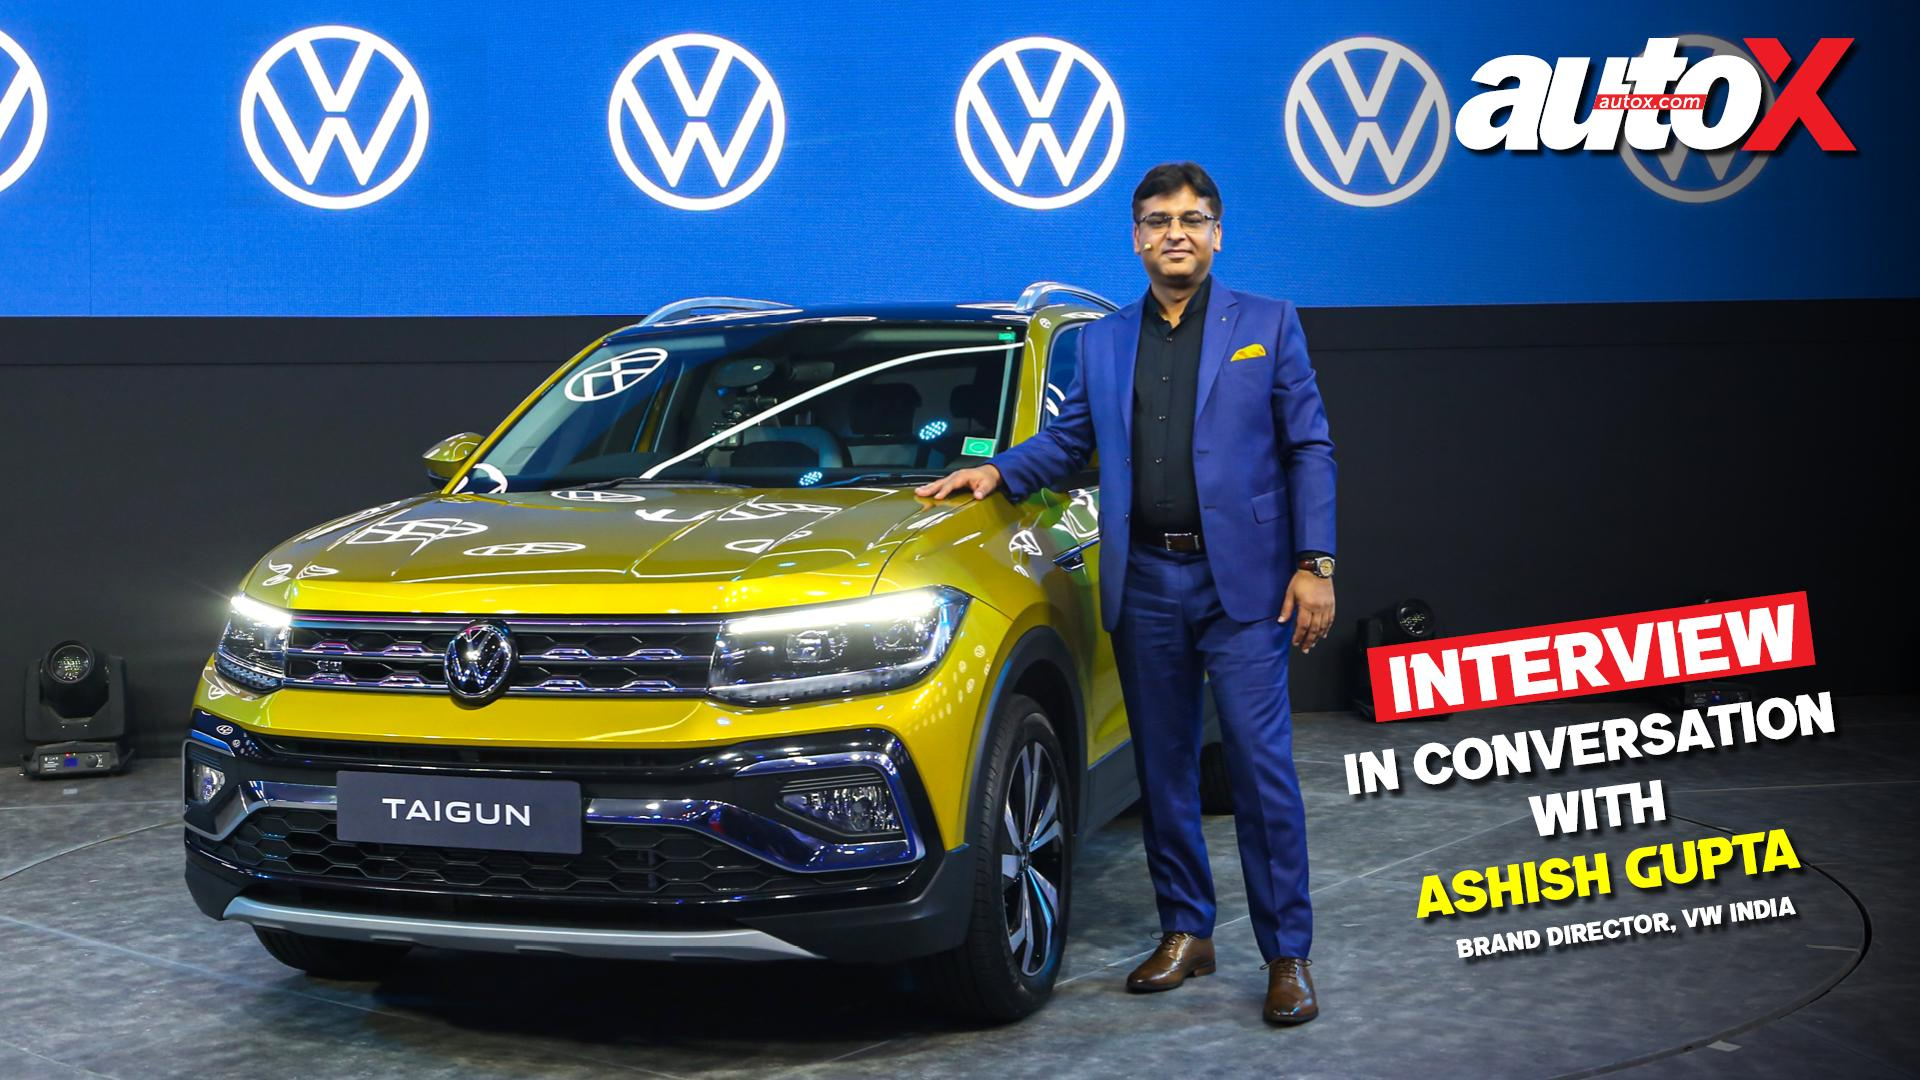 In Conversation with Ashish Gupta, Director, VW India, on Taigun launch, future products & more